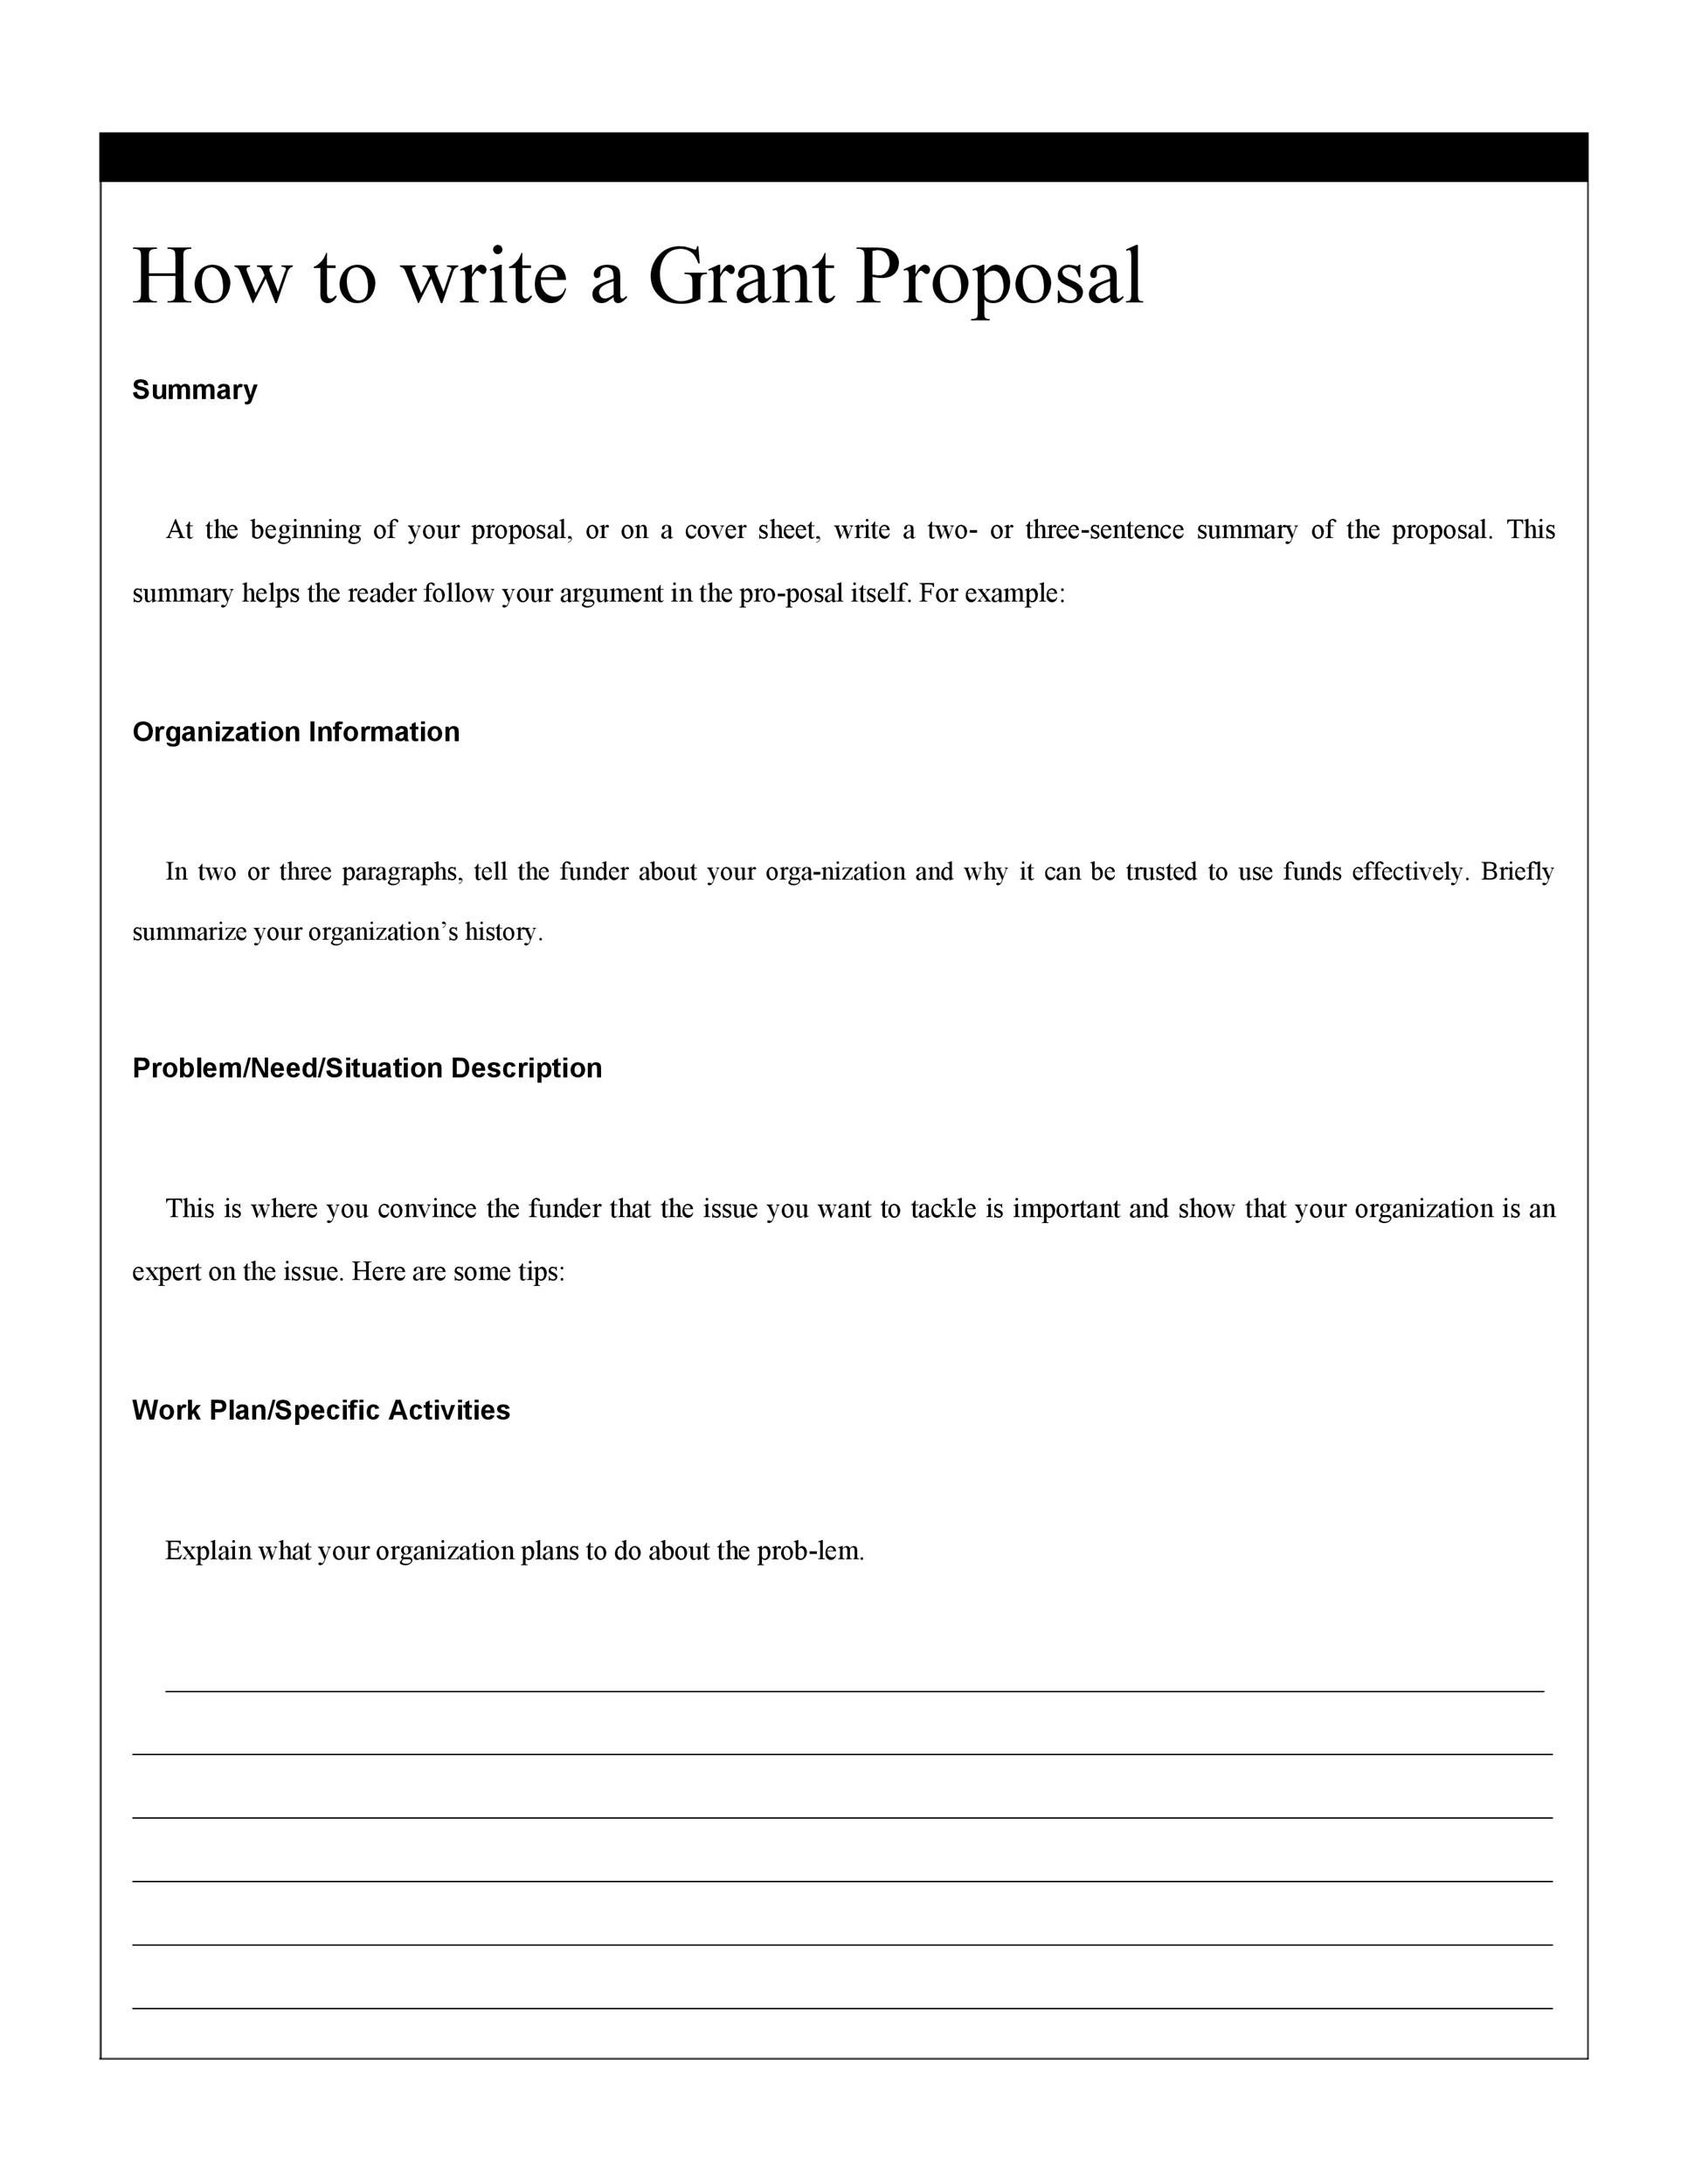 Buy grant proposal ideas